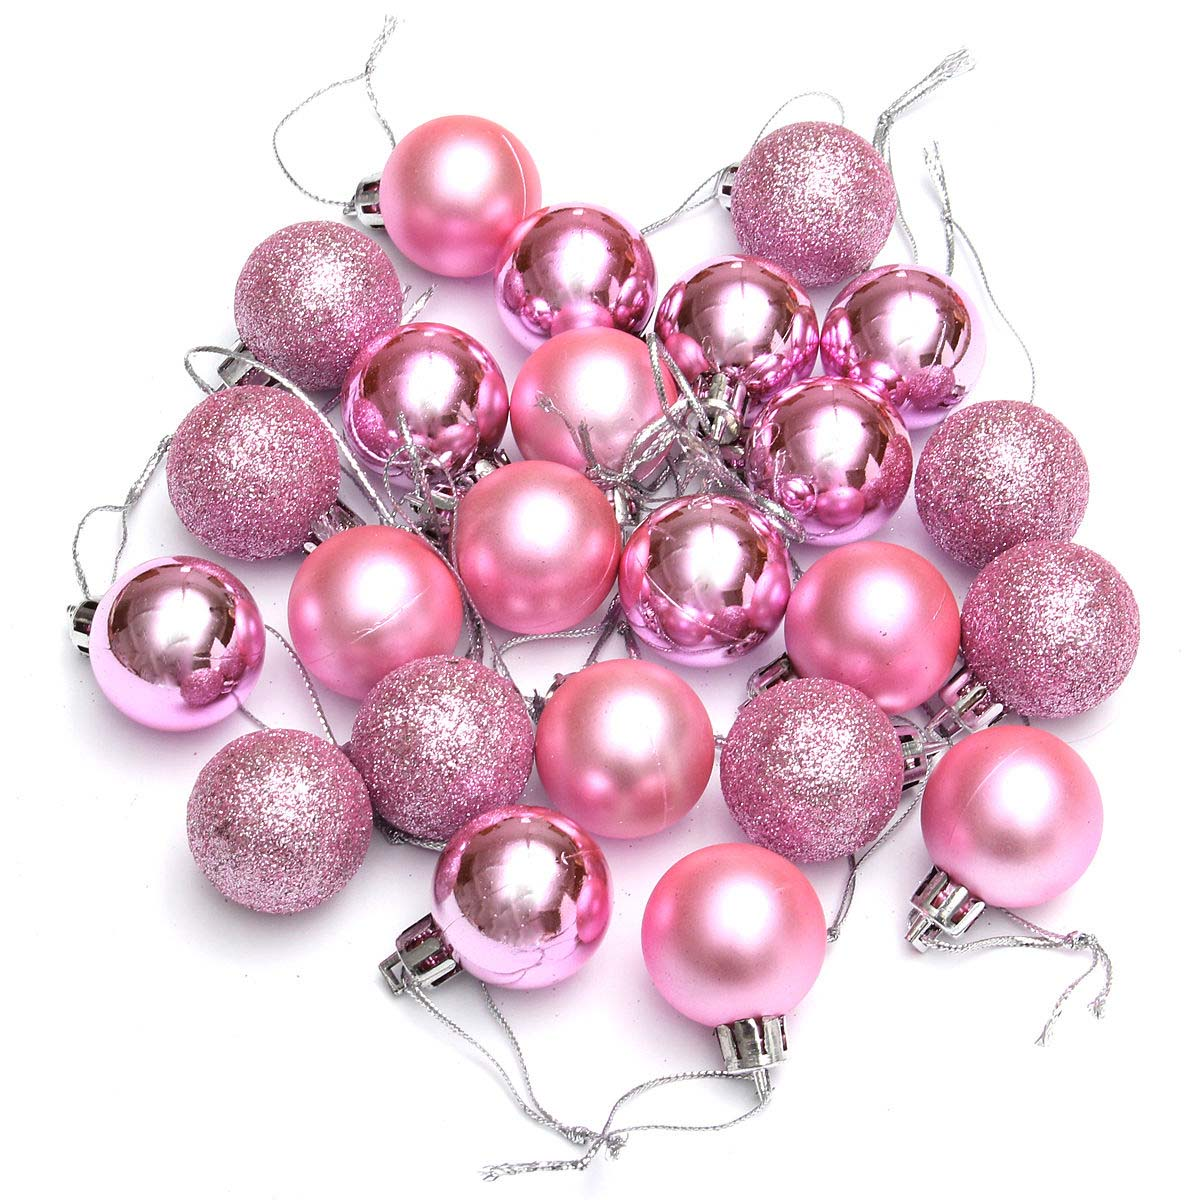 Szs Hot 24pcs Chic Christmas Baubles Tree Plain Glitter Xmas Ornament Ball Decoration Pink In Party Diy Decorations From Home Garden On Aliexpress